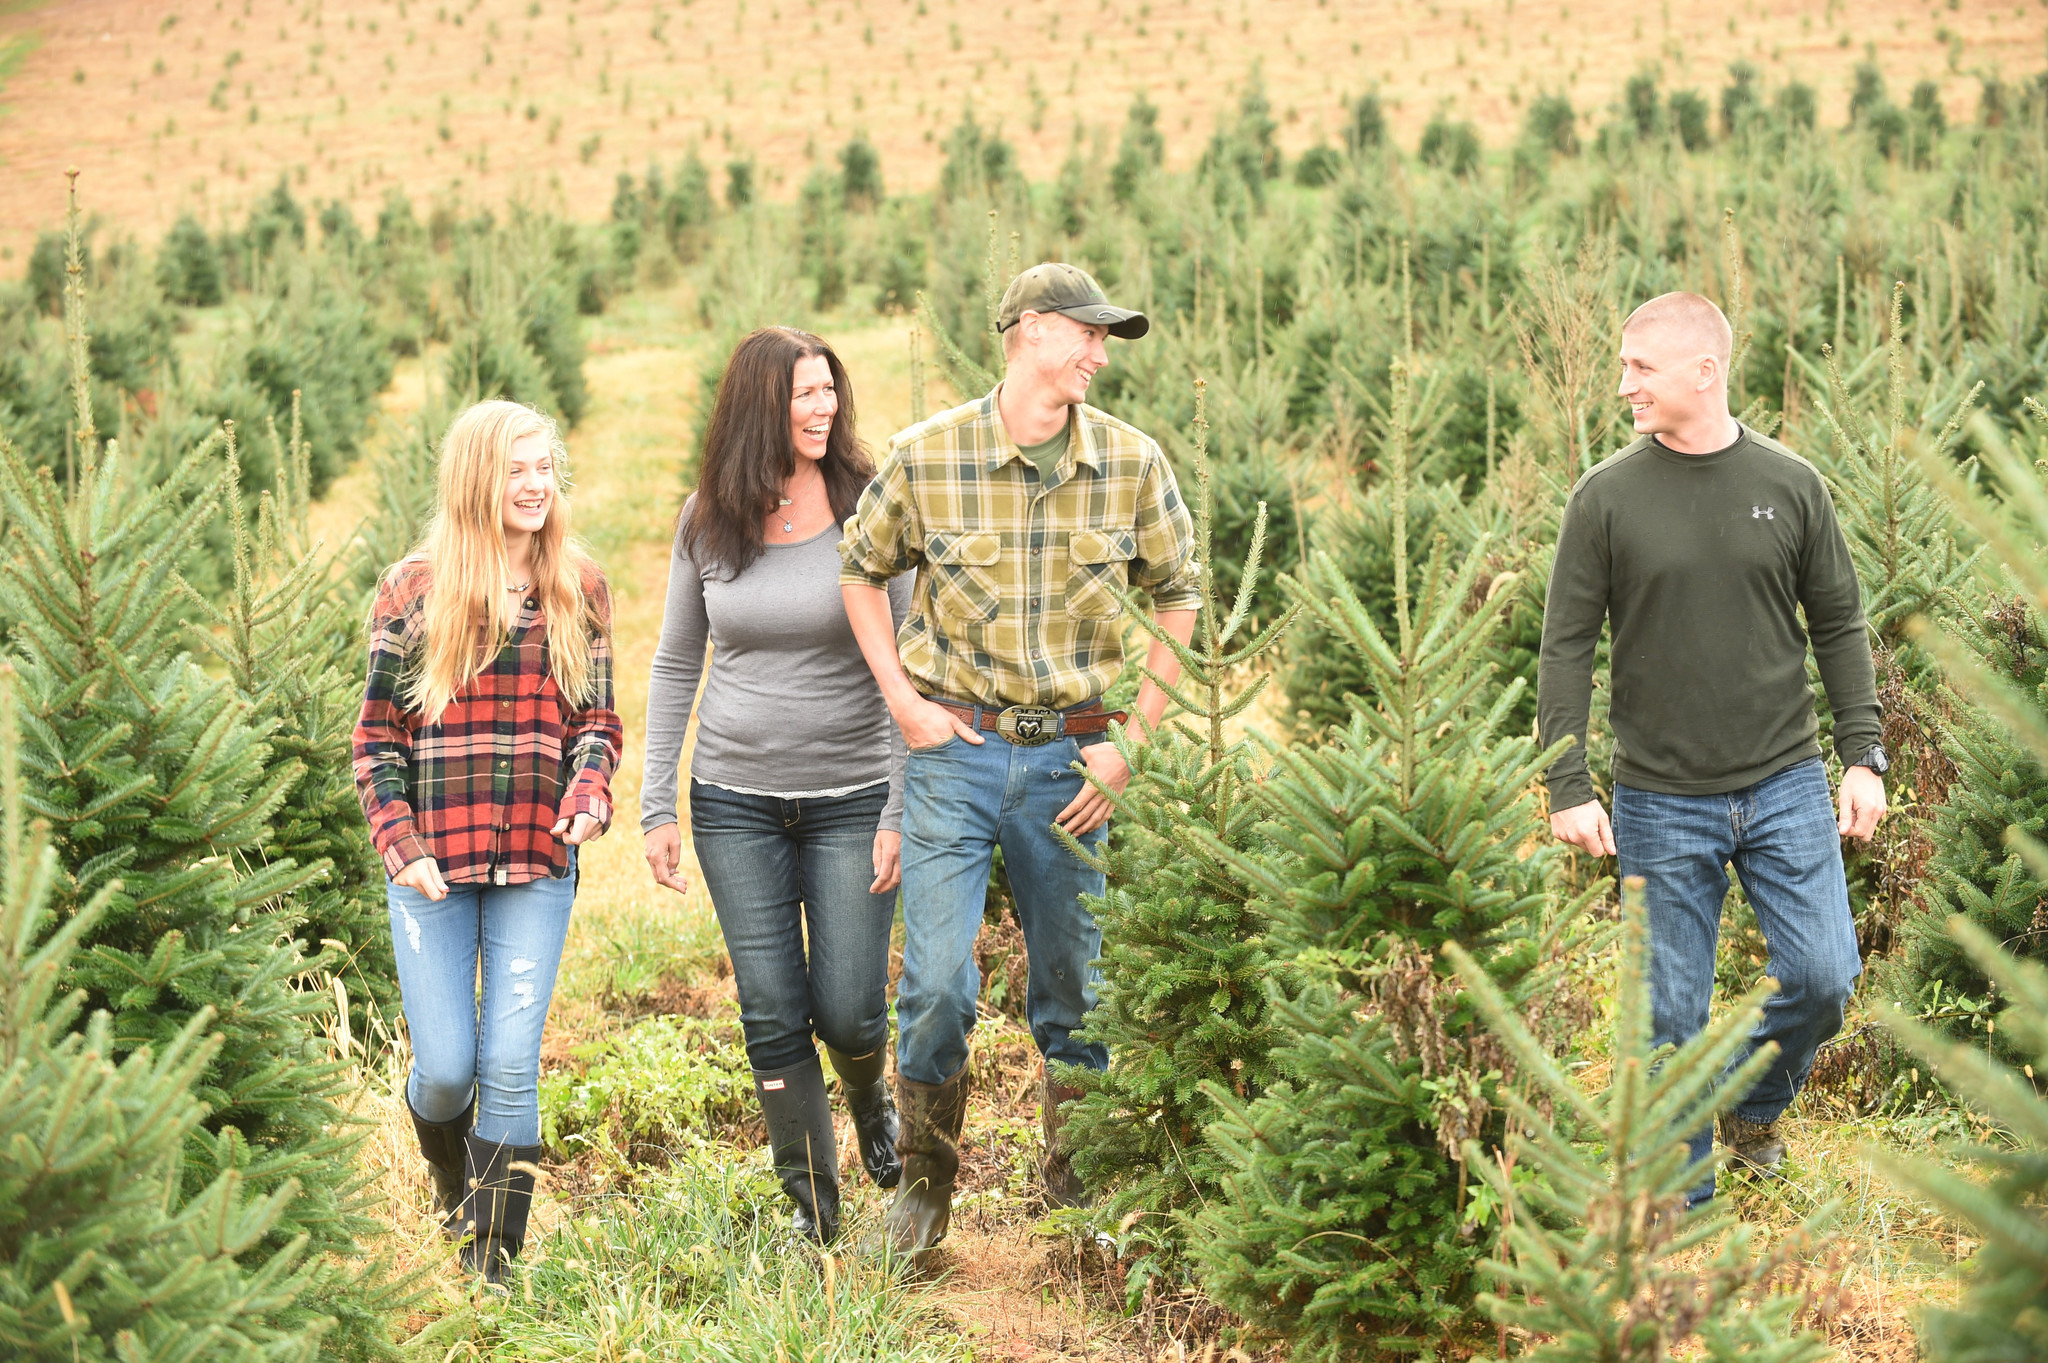 Loss Spurs Harford Christmas Tree Farm To Support Cancer